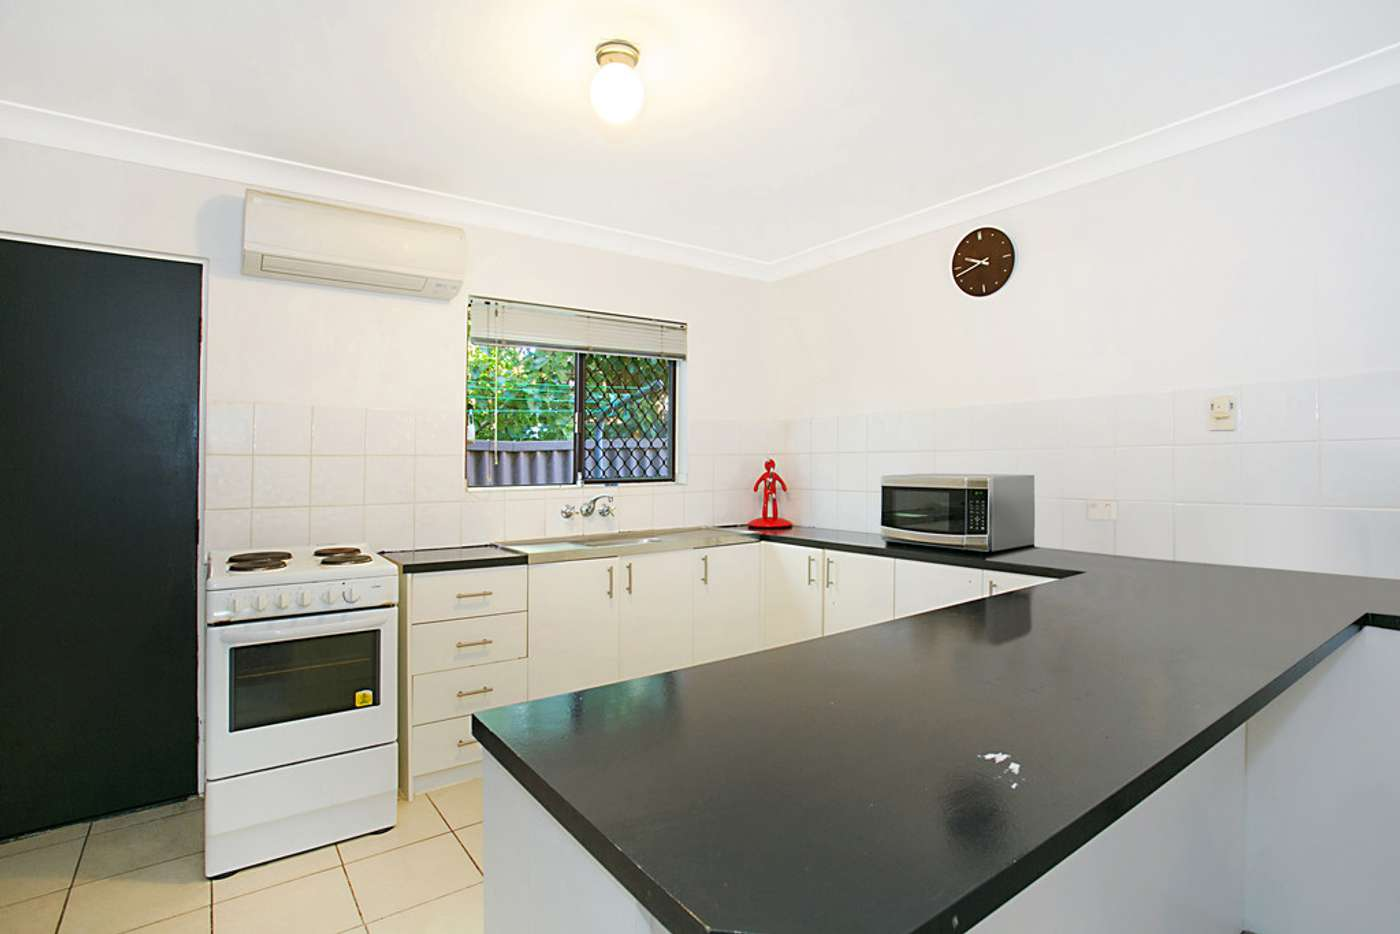 Main view of Homely apartment listing, 8/188 High Street, Southport QLD 4215